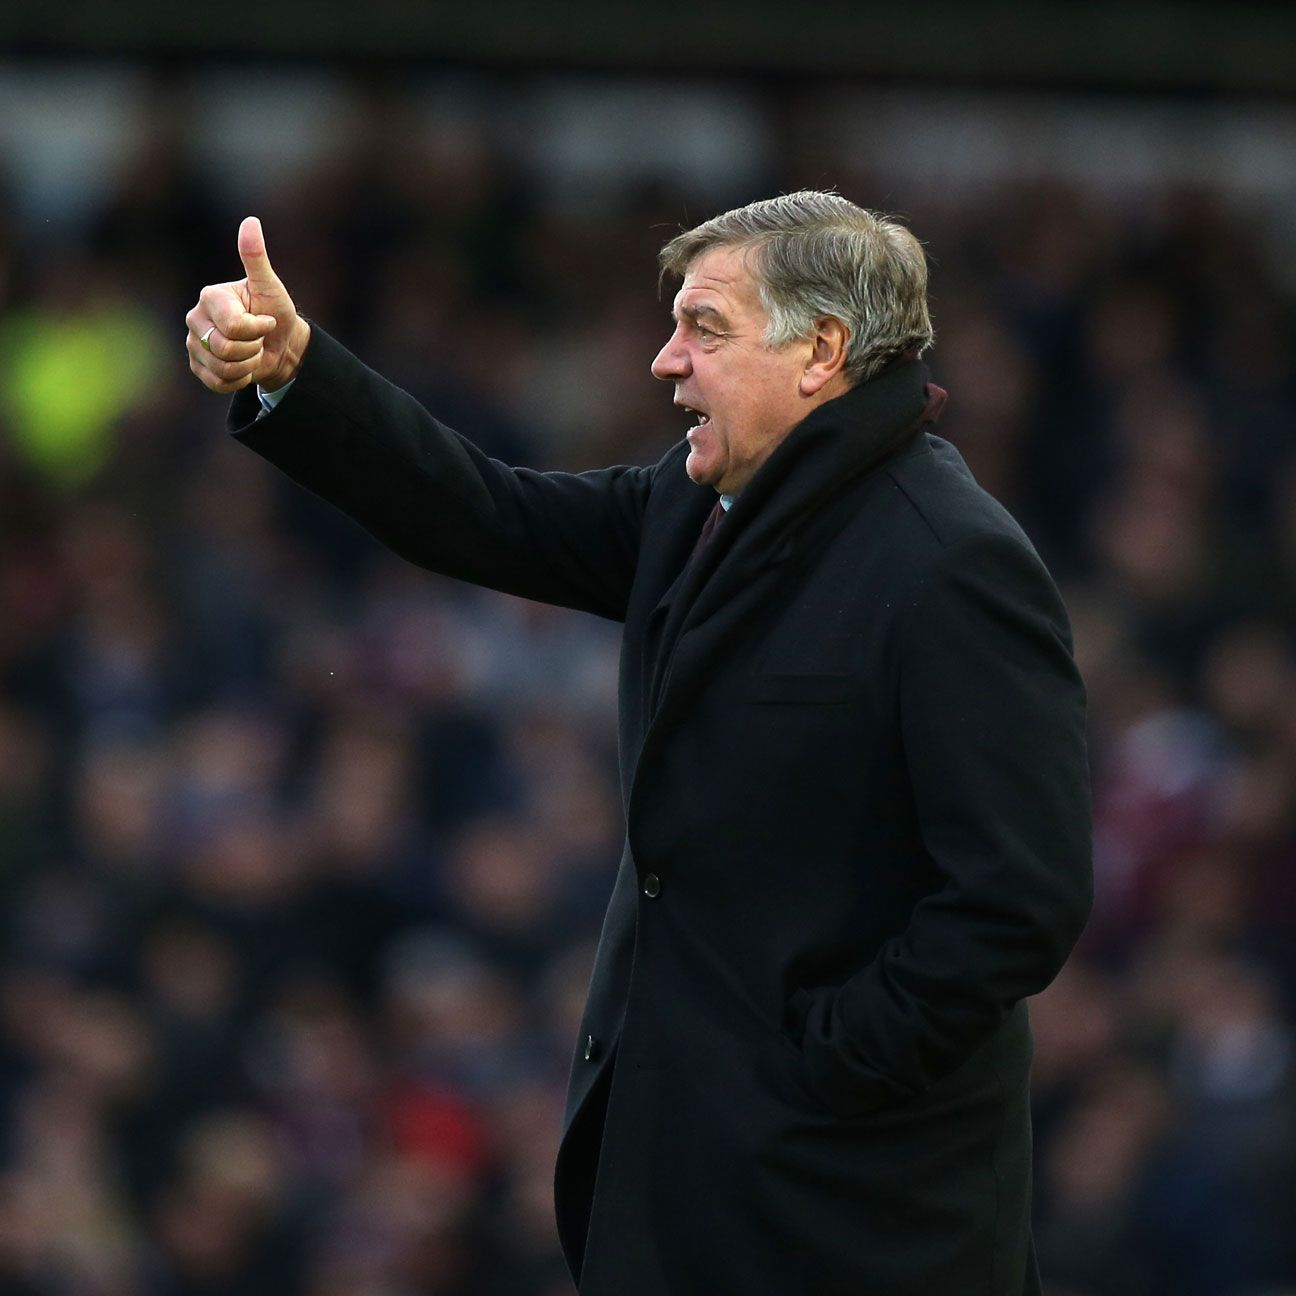 Once again Sunderland are hoping a midseason managerial change will pay survival dividends, this time with Sam Allardyce.